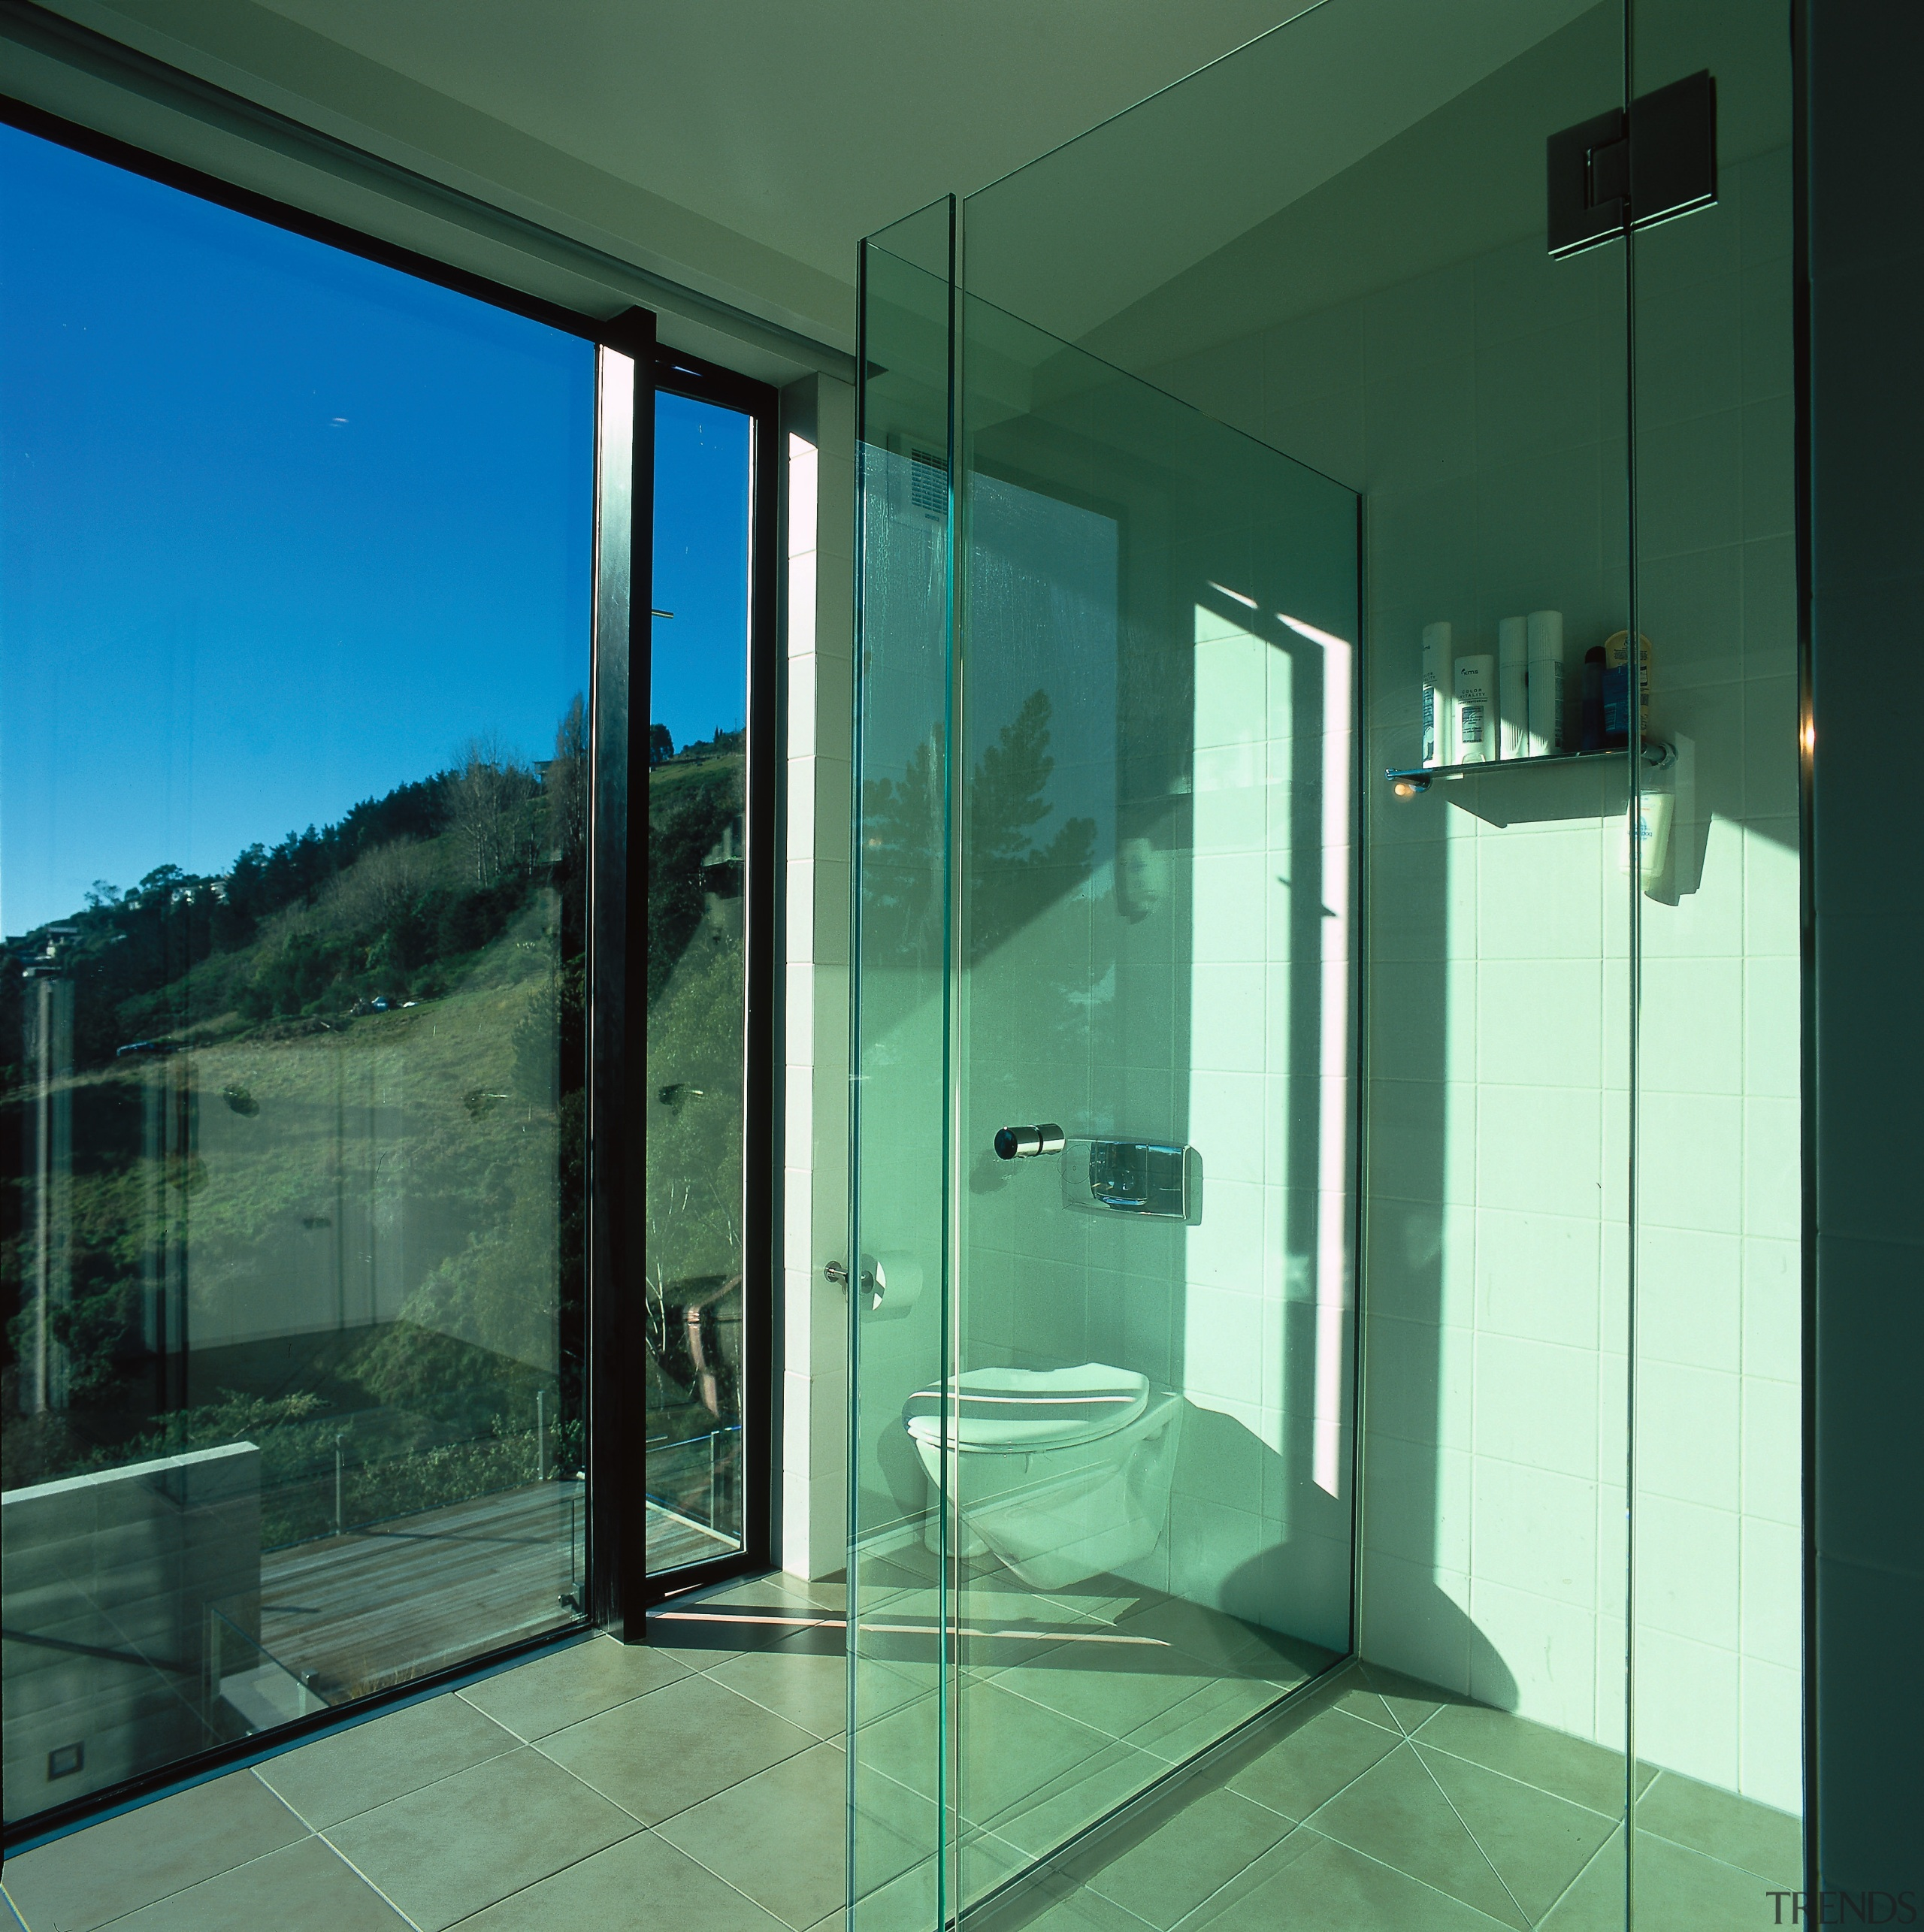 View of the bathroom, floor-to-ceiling windows and a architecture, daylighting, door, glass, house, window, green, teal